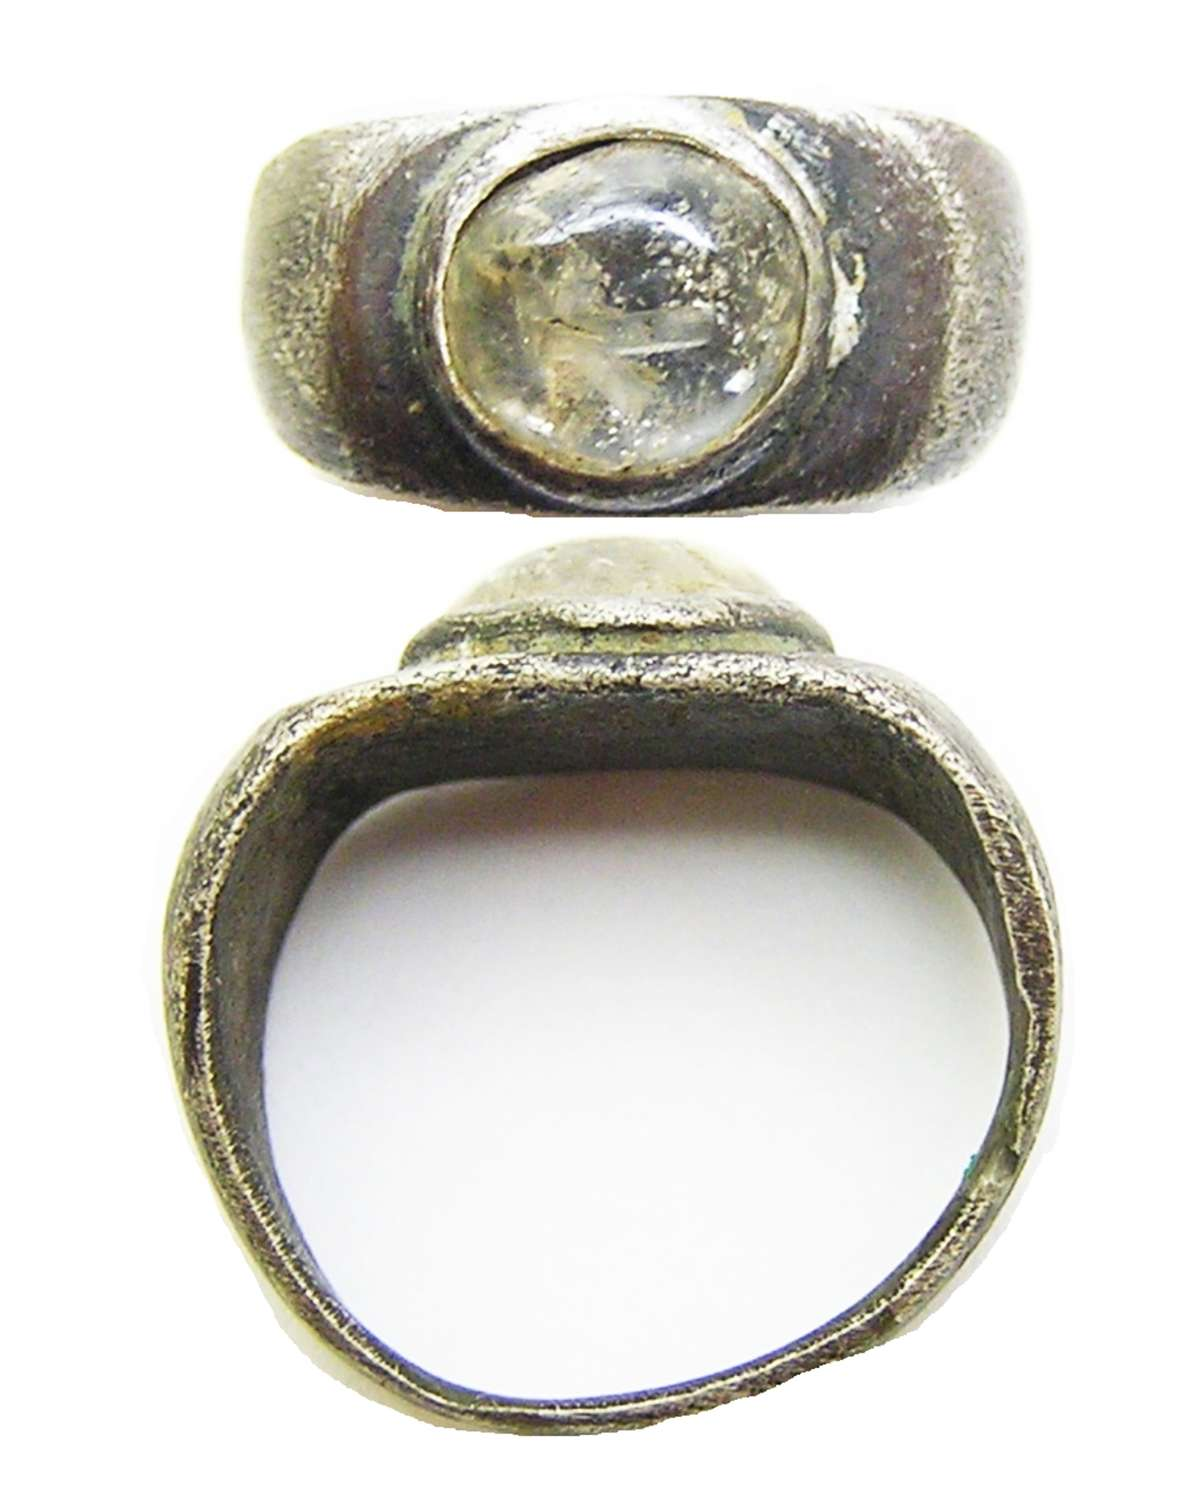 Ancient Roman silver and rock crystal finger ring